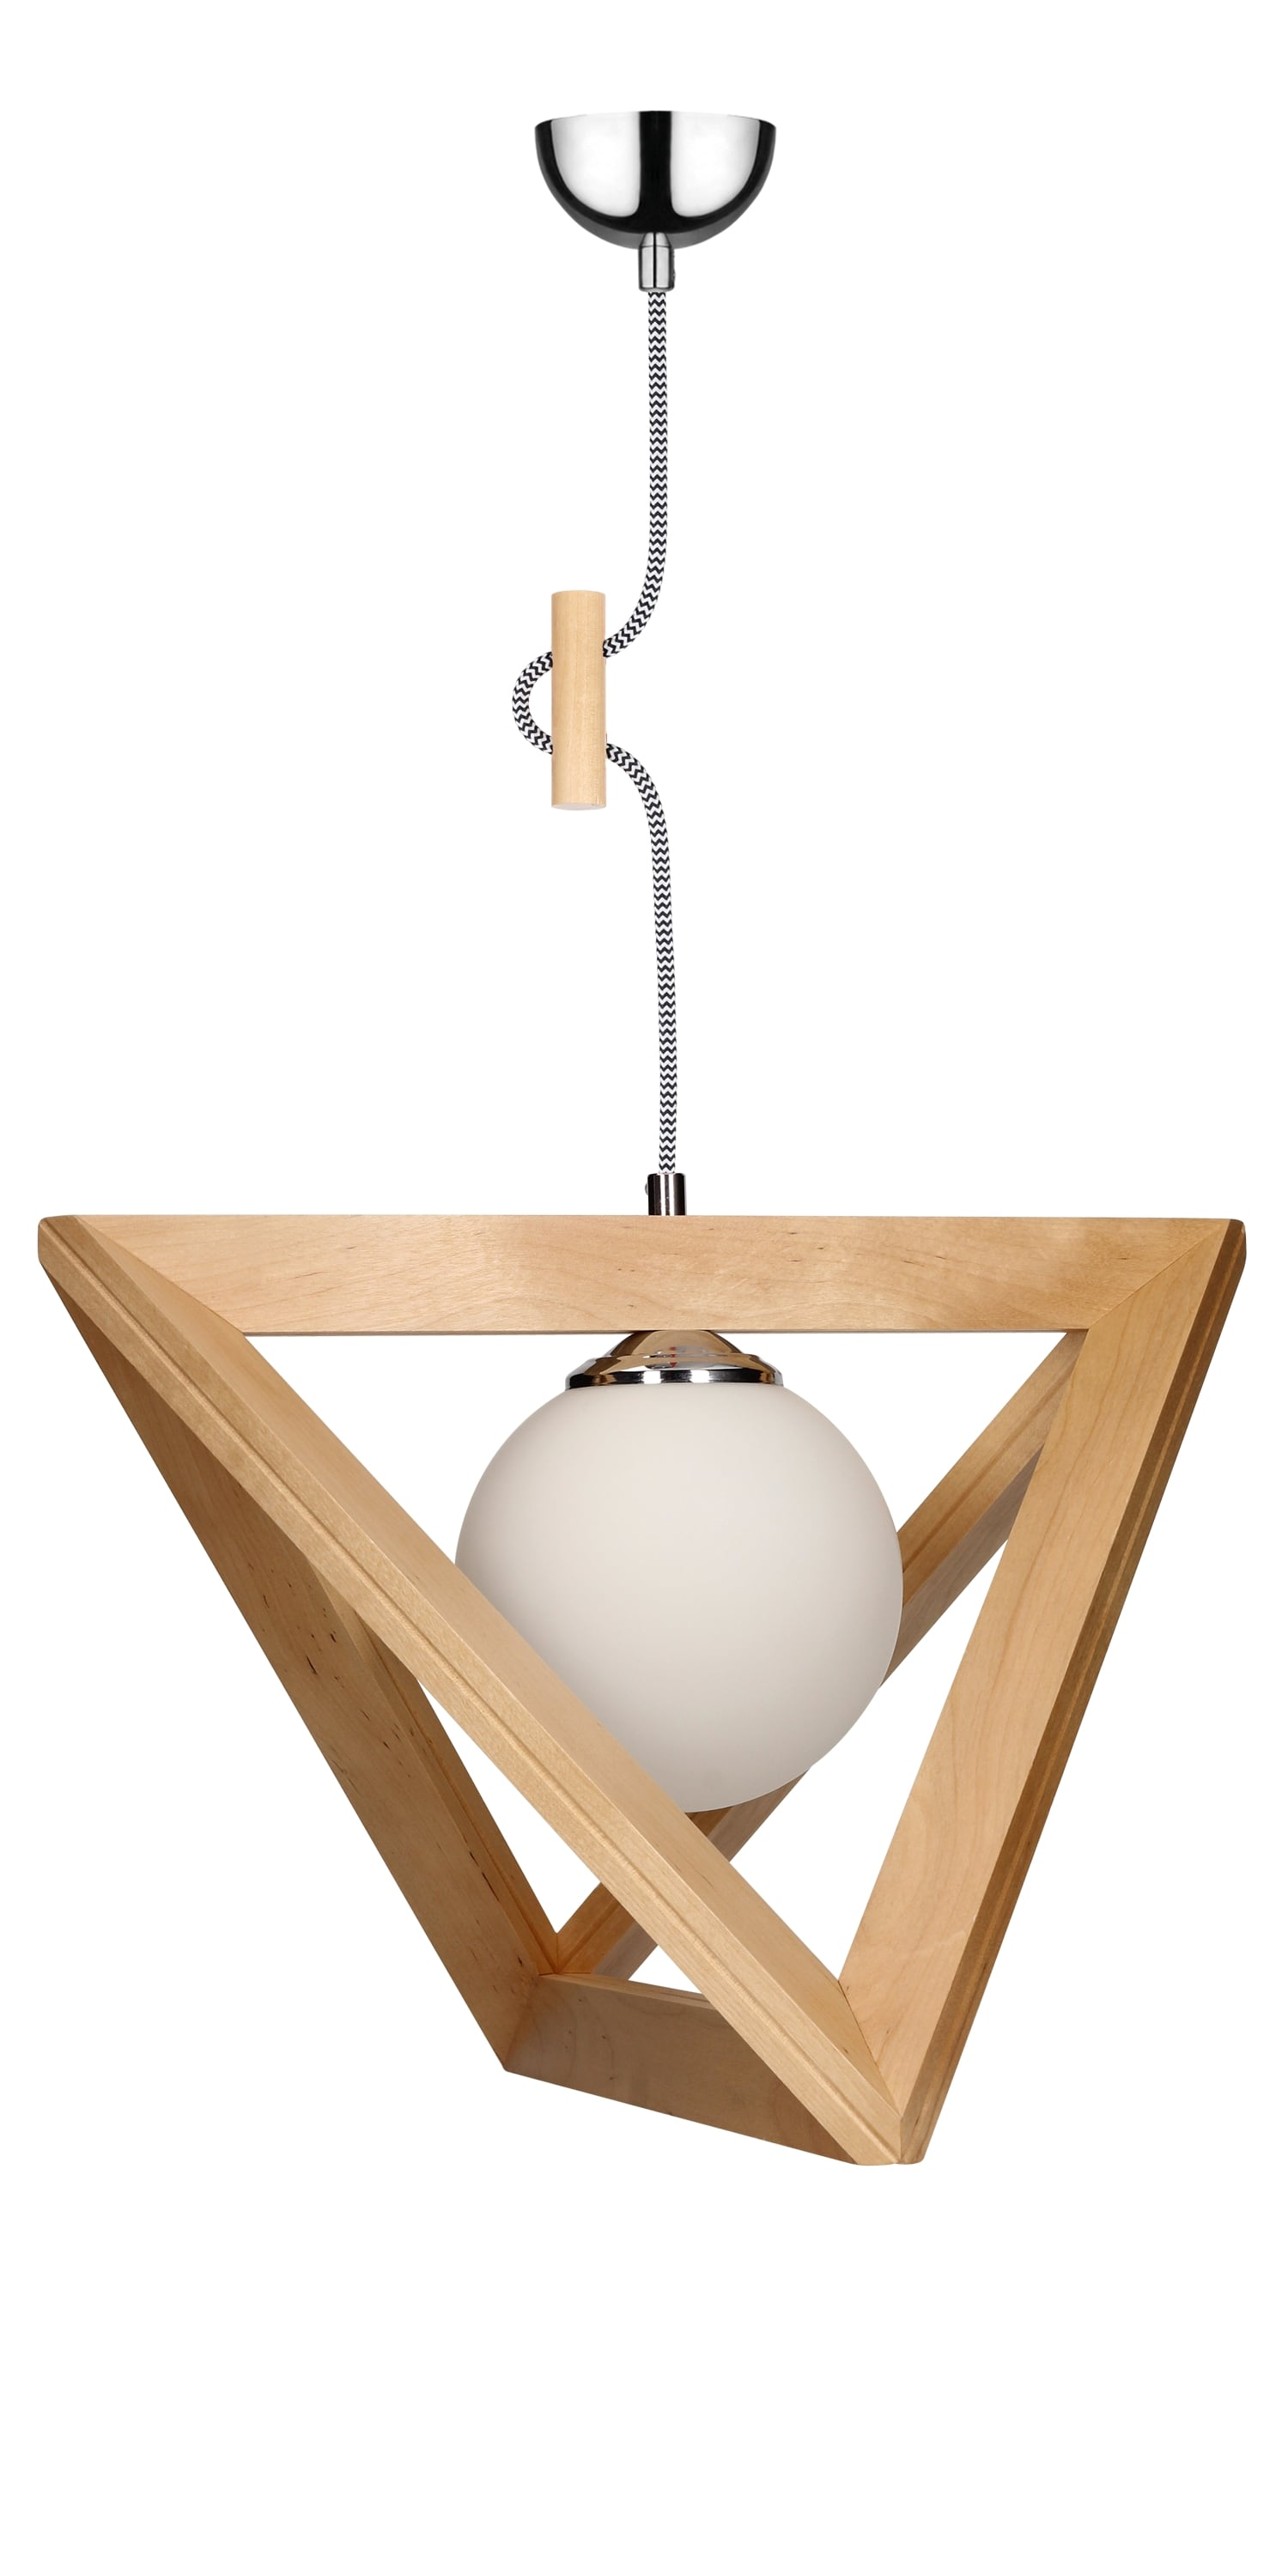 Hanging lamp Trigonon brzoza / chrom / black and white E27 60W